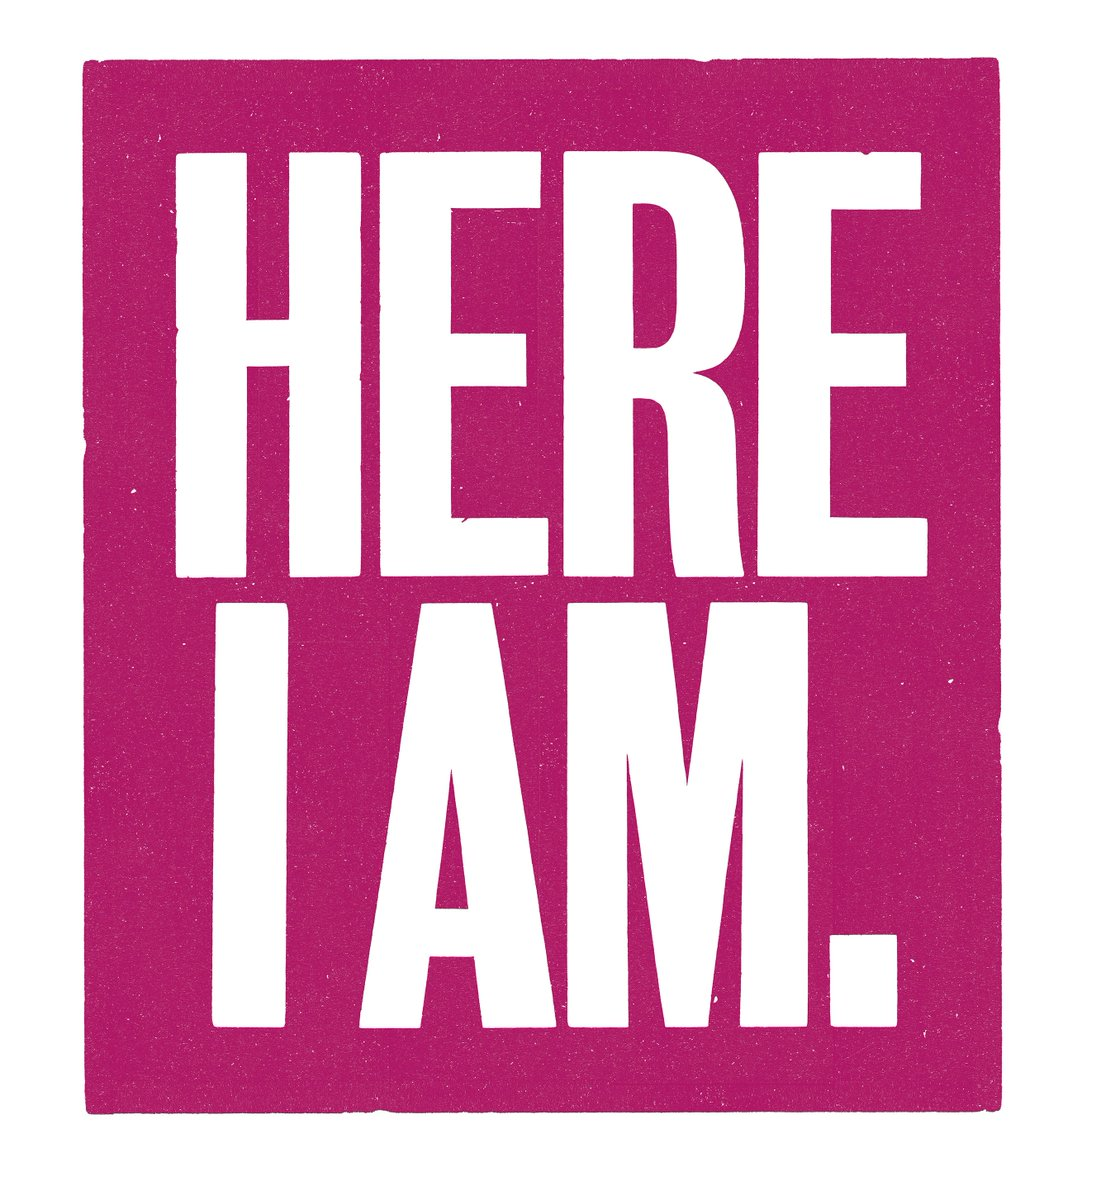 Learning disability has been invisible for too long. Now it's time to see it. #HereIAm https://t.co/PWqcLvy9PX